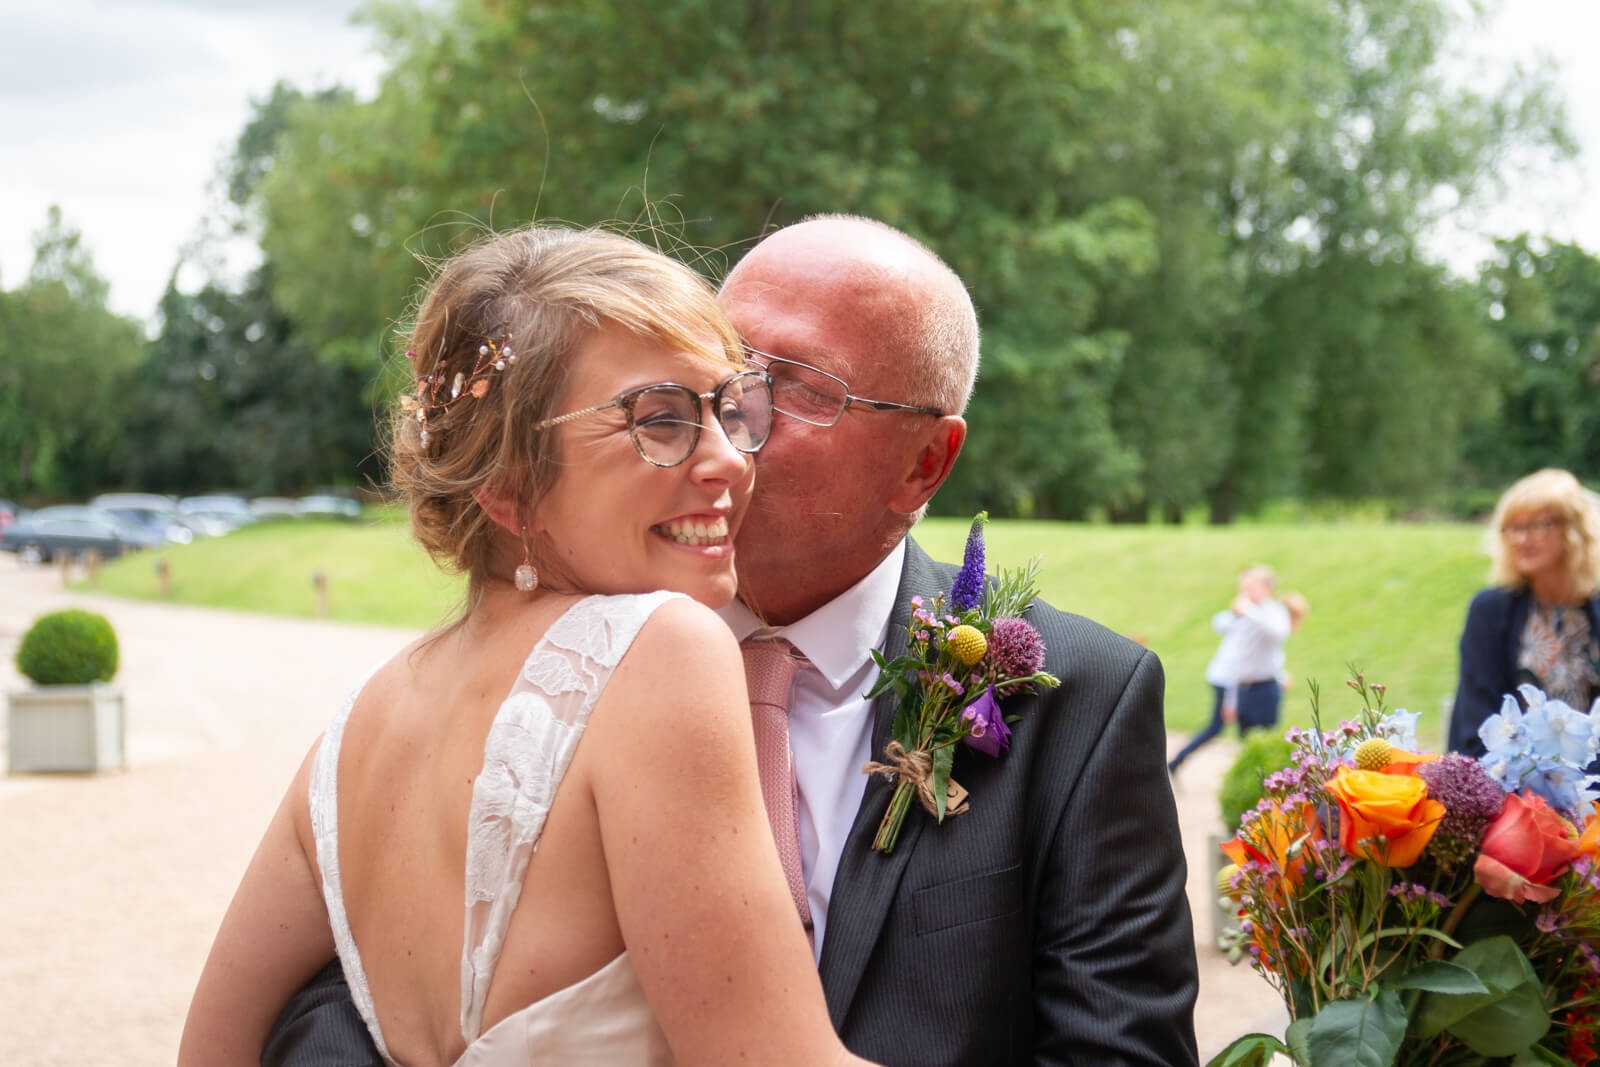 Father of the bride kisses her on the cheek while she grins